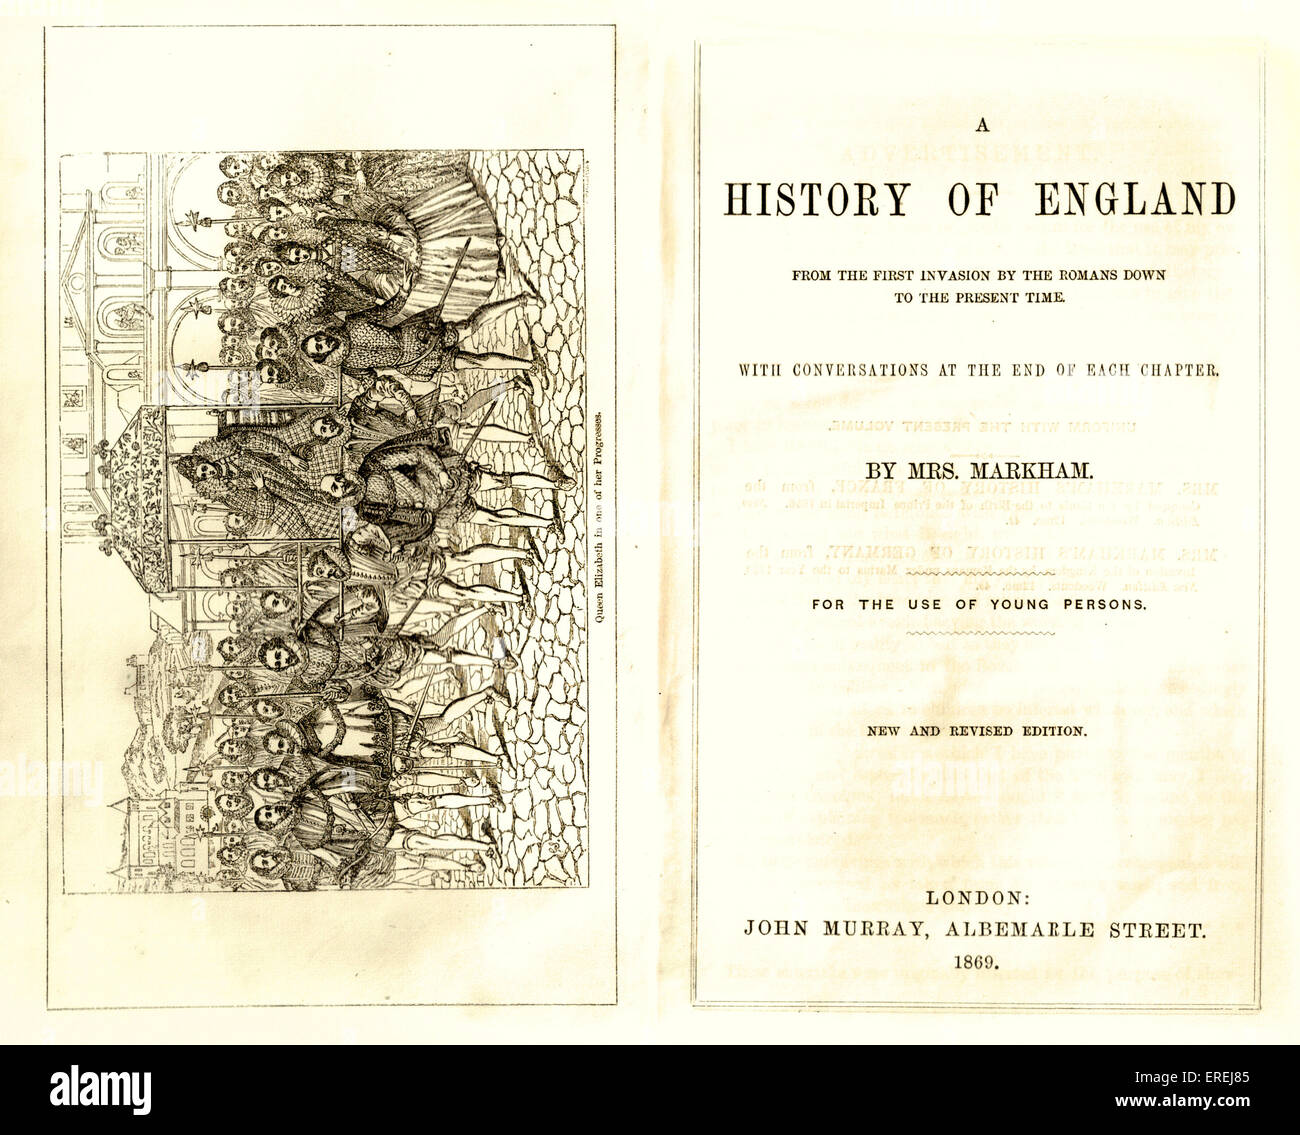 Title page and frontispiece of 'A History of England', by Mrs Markham, 'For the use of young persons'. - Stock Image